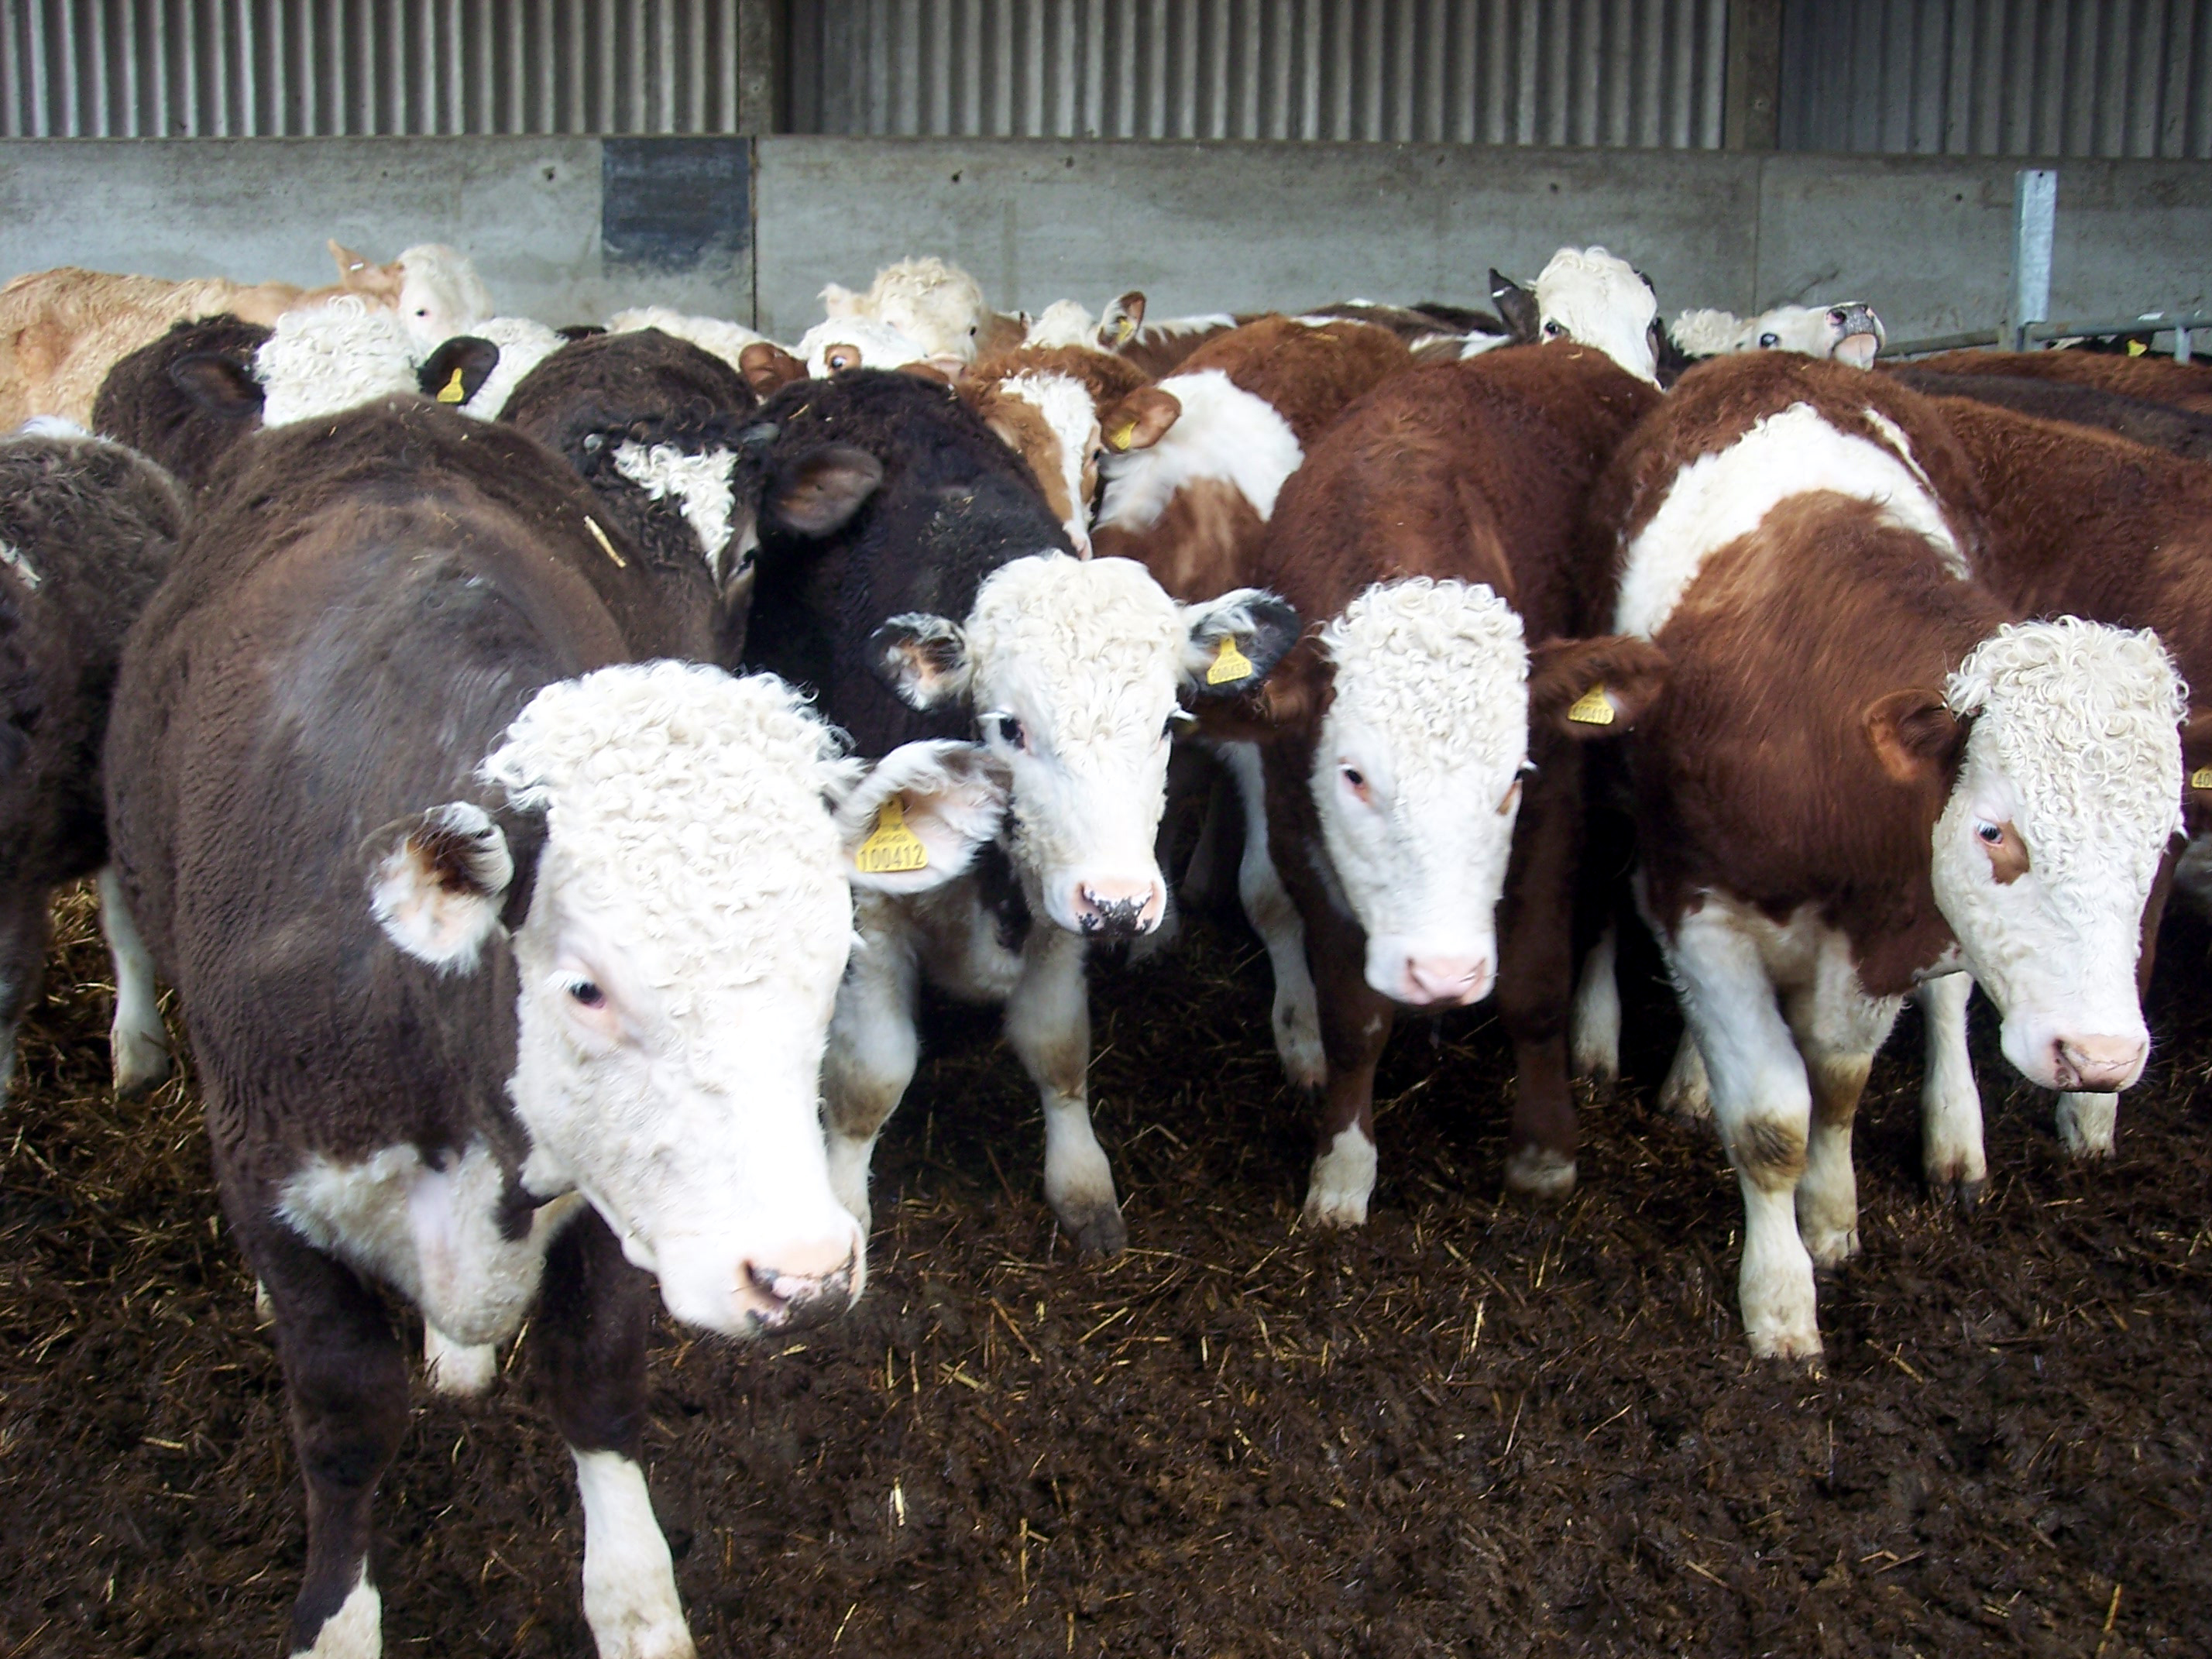 Great care is taken to produce quality meat at Foxhills farm in Hertfordshire. Calves are reared naturally on their mothers for 8 months and then graze Hertfordshire pastures. The farmer does not use any G.M. Feed, artificial fertilizer or sprays and does not use routine antibiotics. The cattle are ...